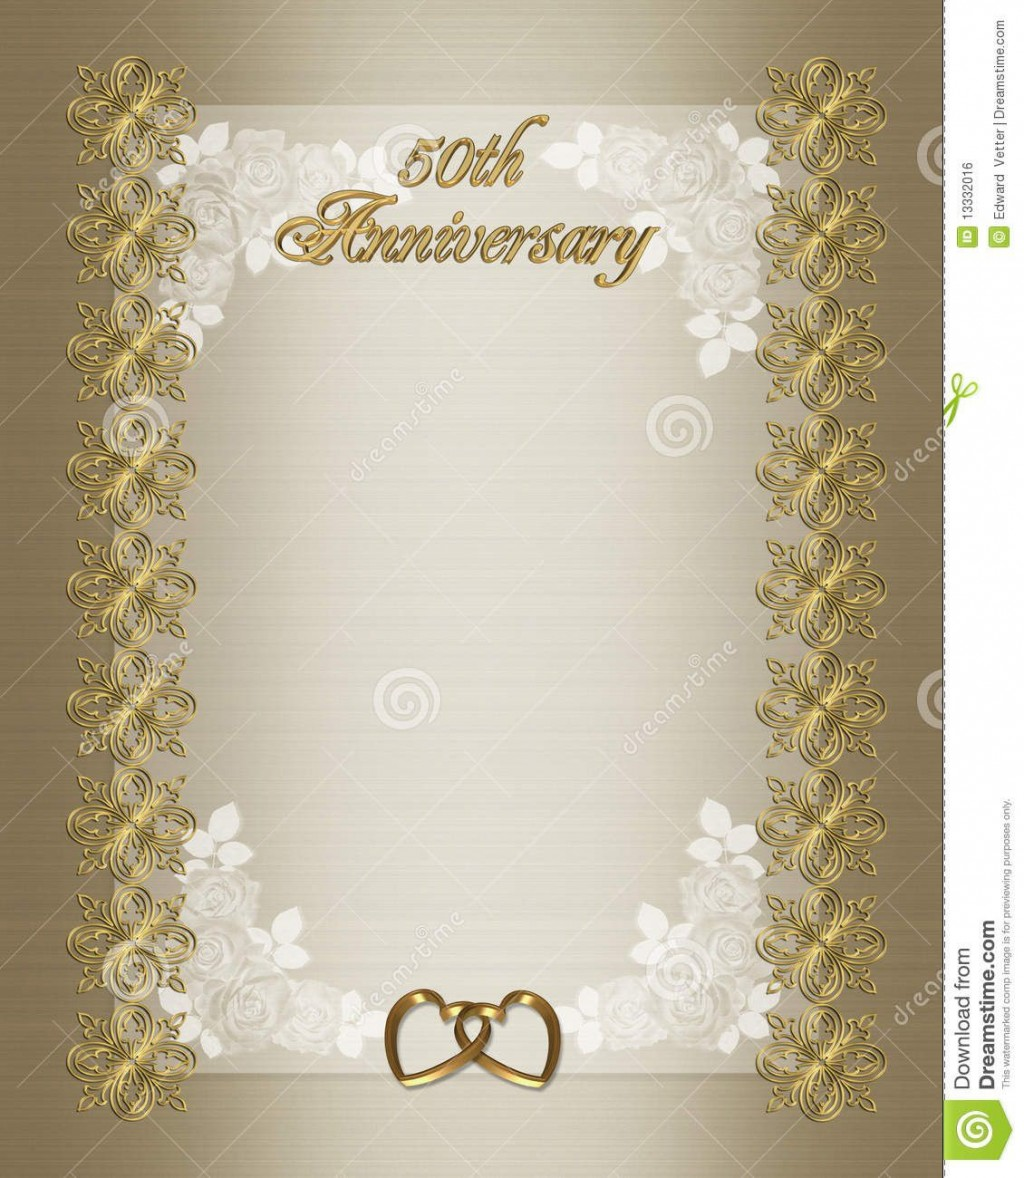 001 Awesome 50th Wedding Anniversary Invitation Template Microsoft Word High Resolution  FreeLarge